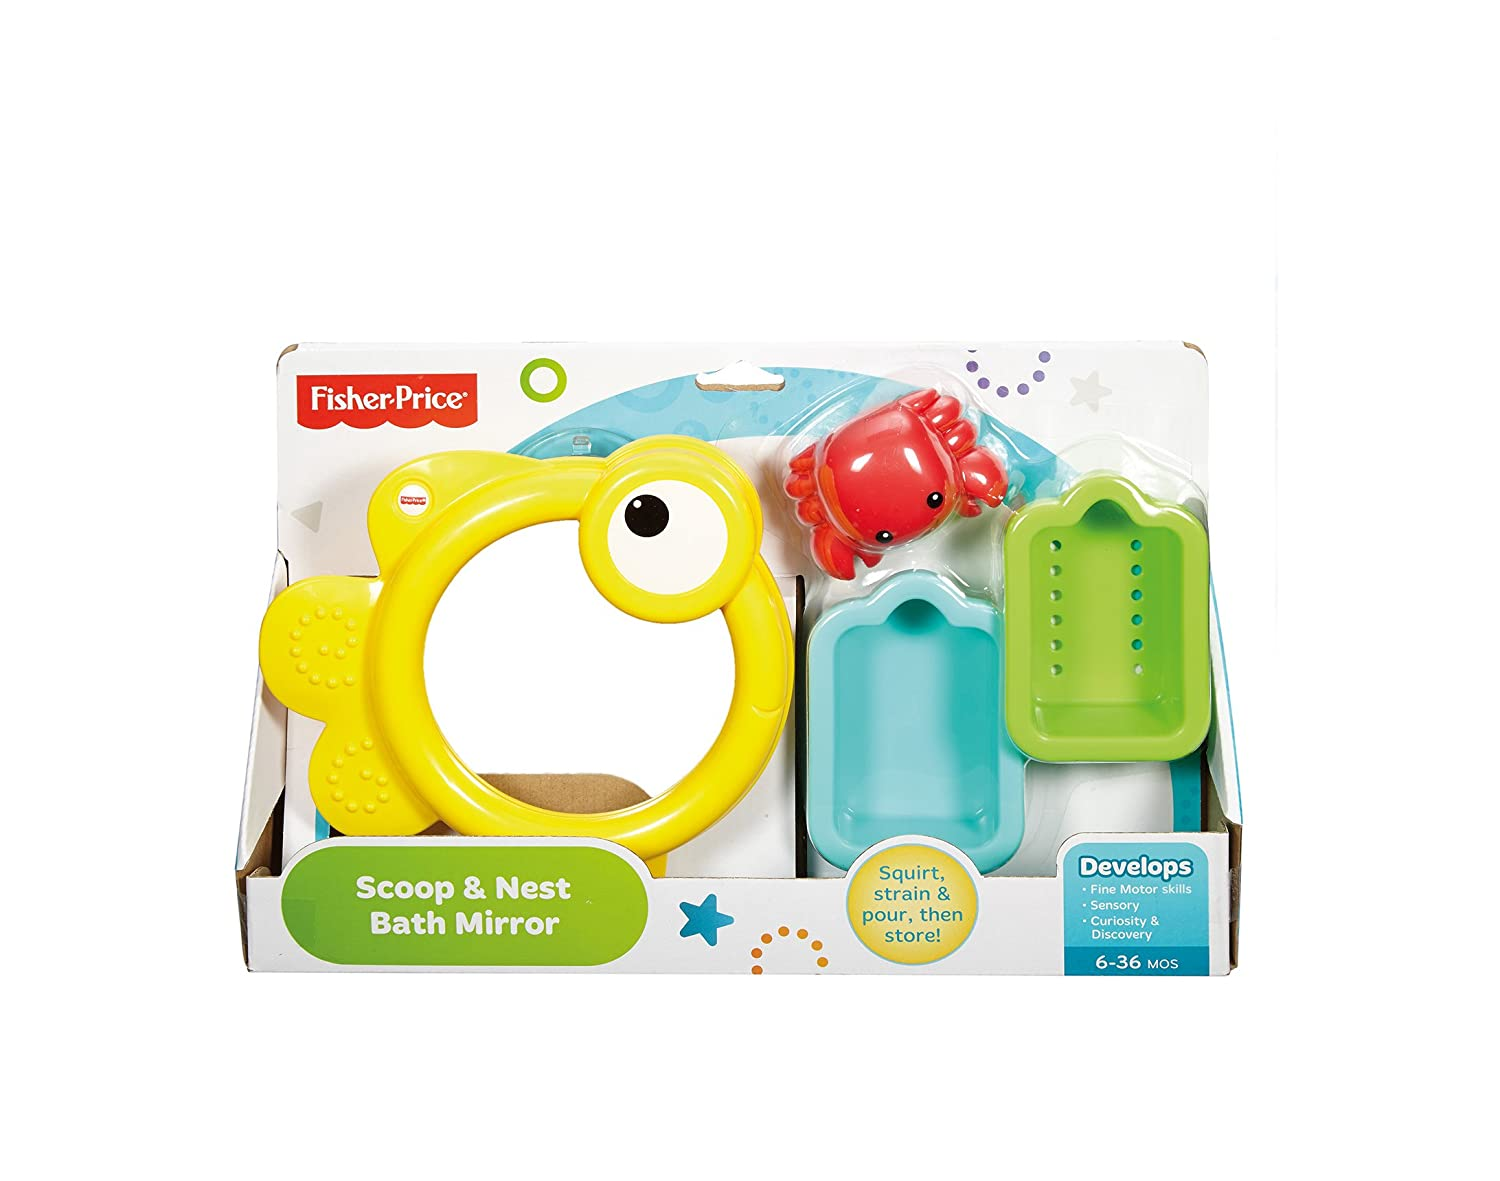 Infant Espejito para baño Fisher Price Mattel CMY